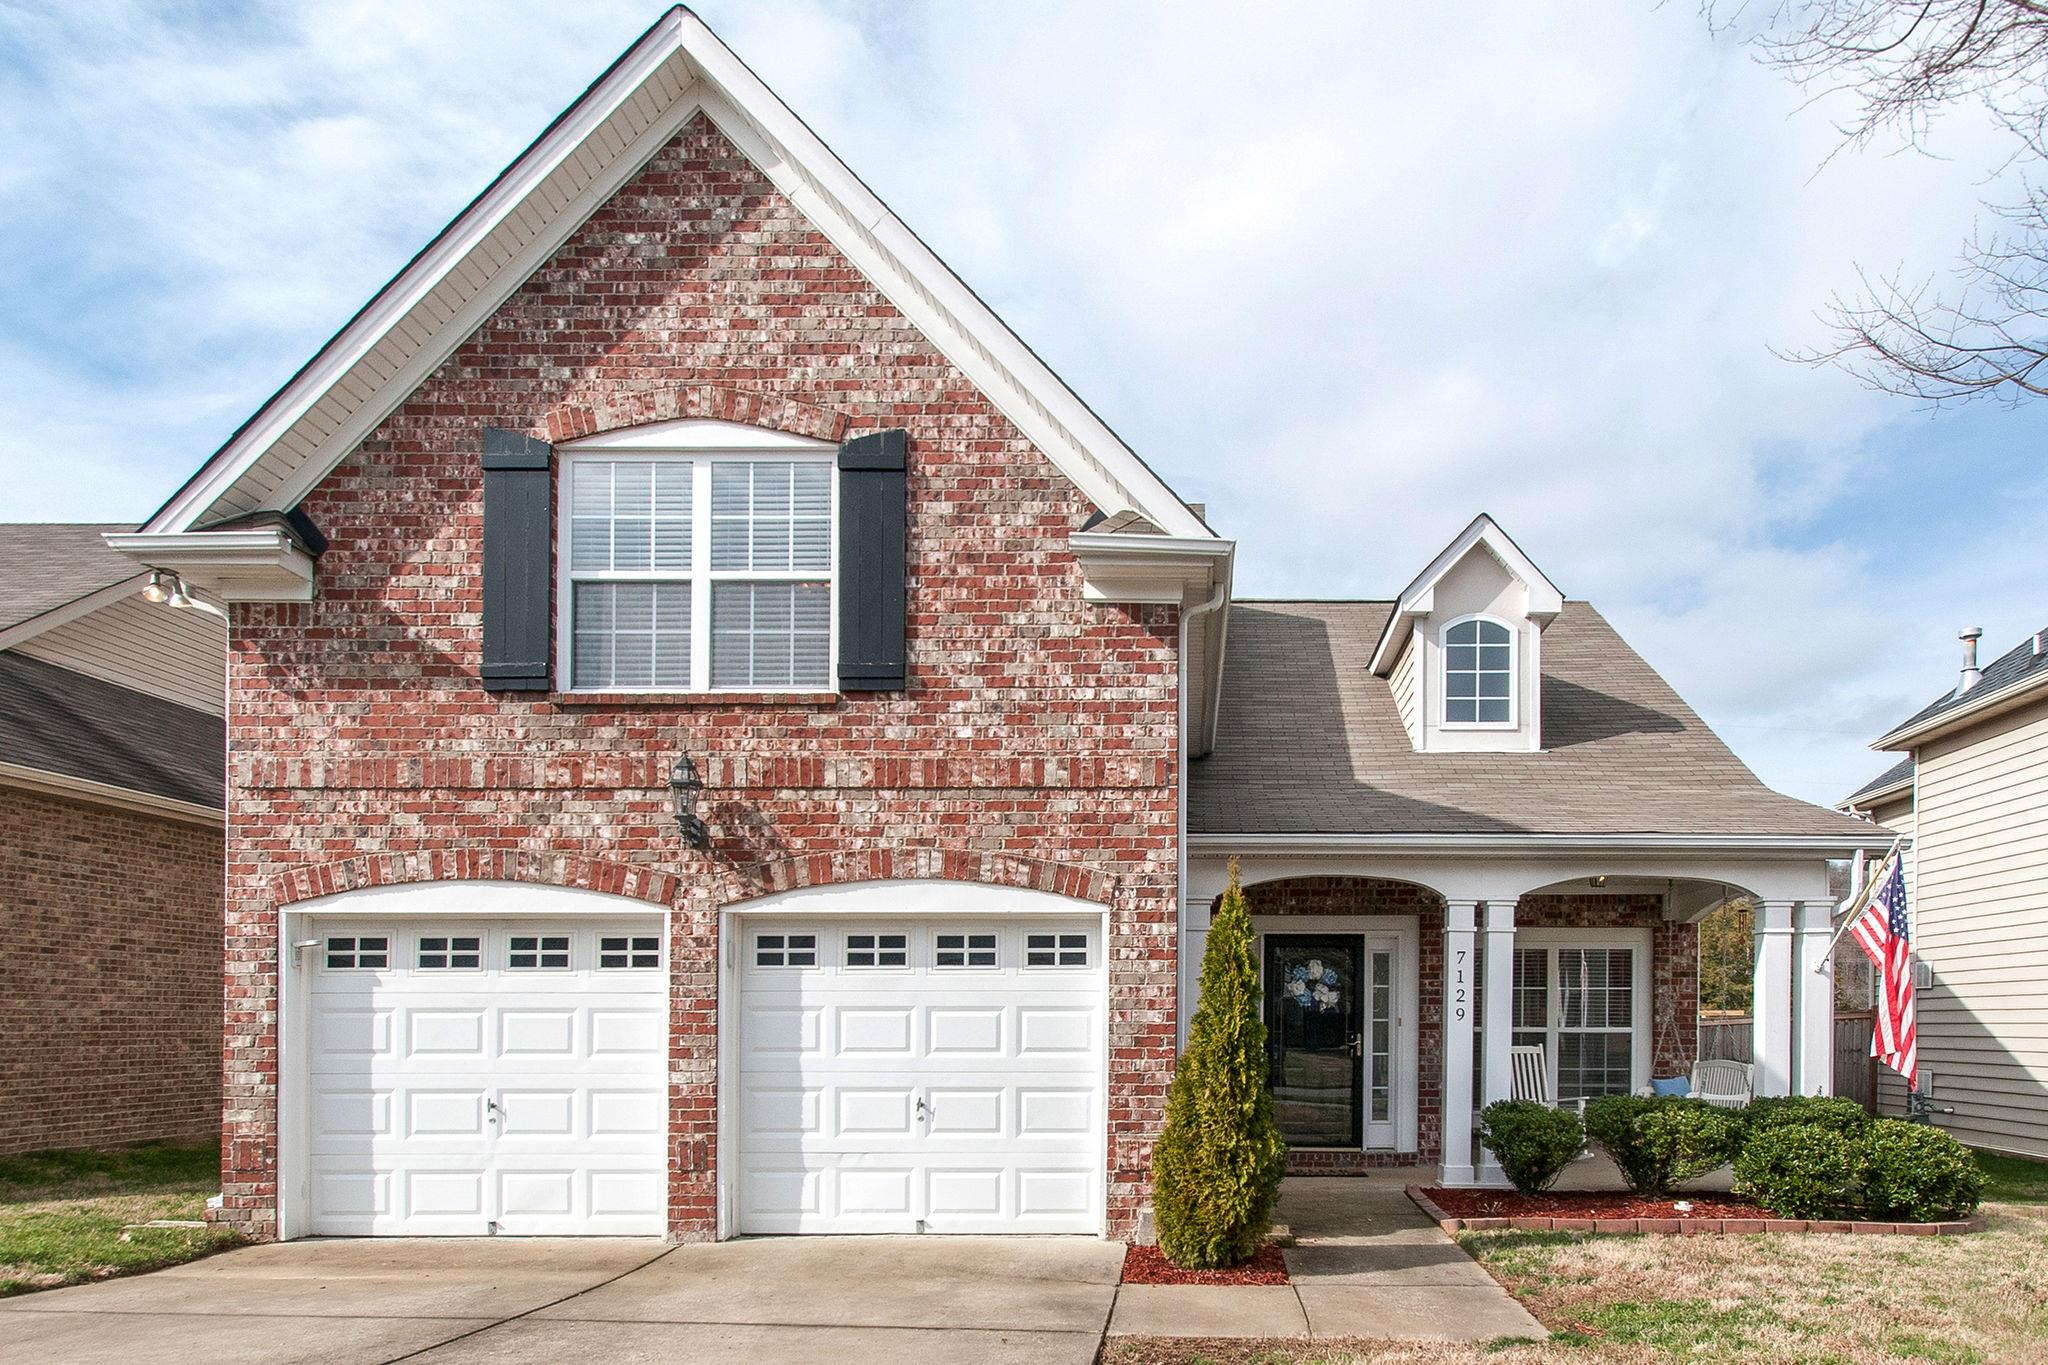 7129 Riverfront Dr, Bellevue in Davidson County County, TN 37221 Home for Sale